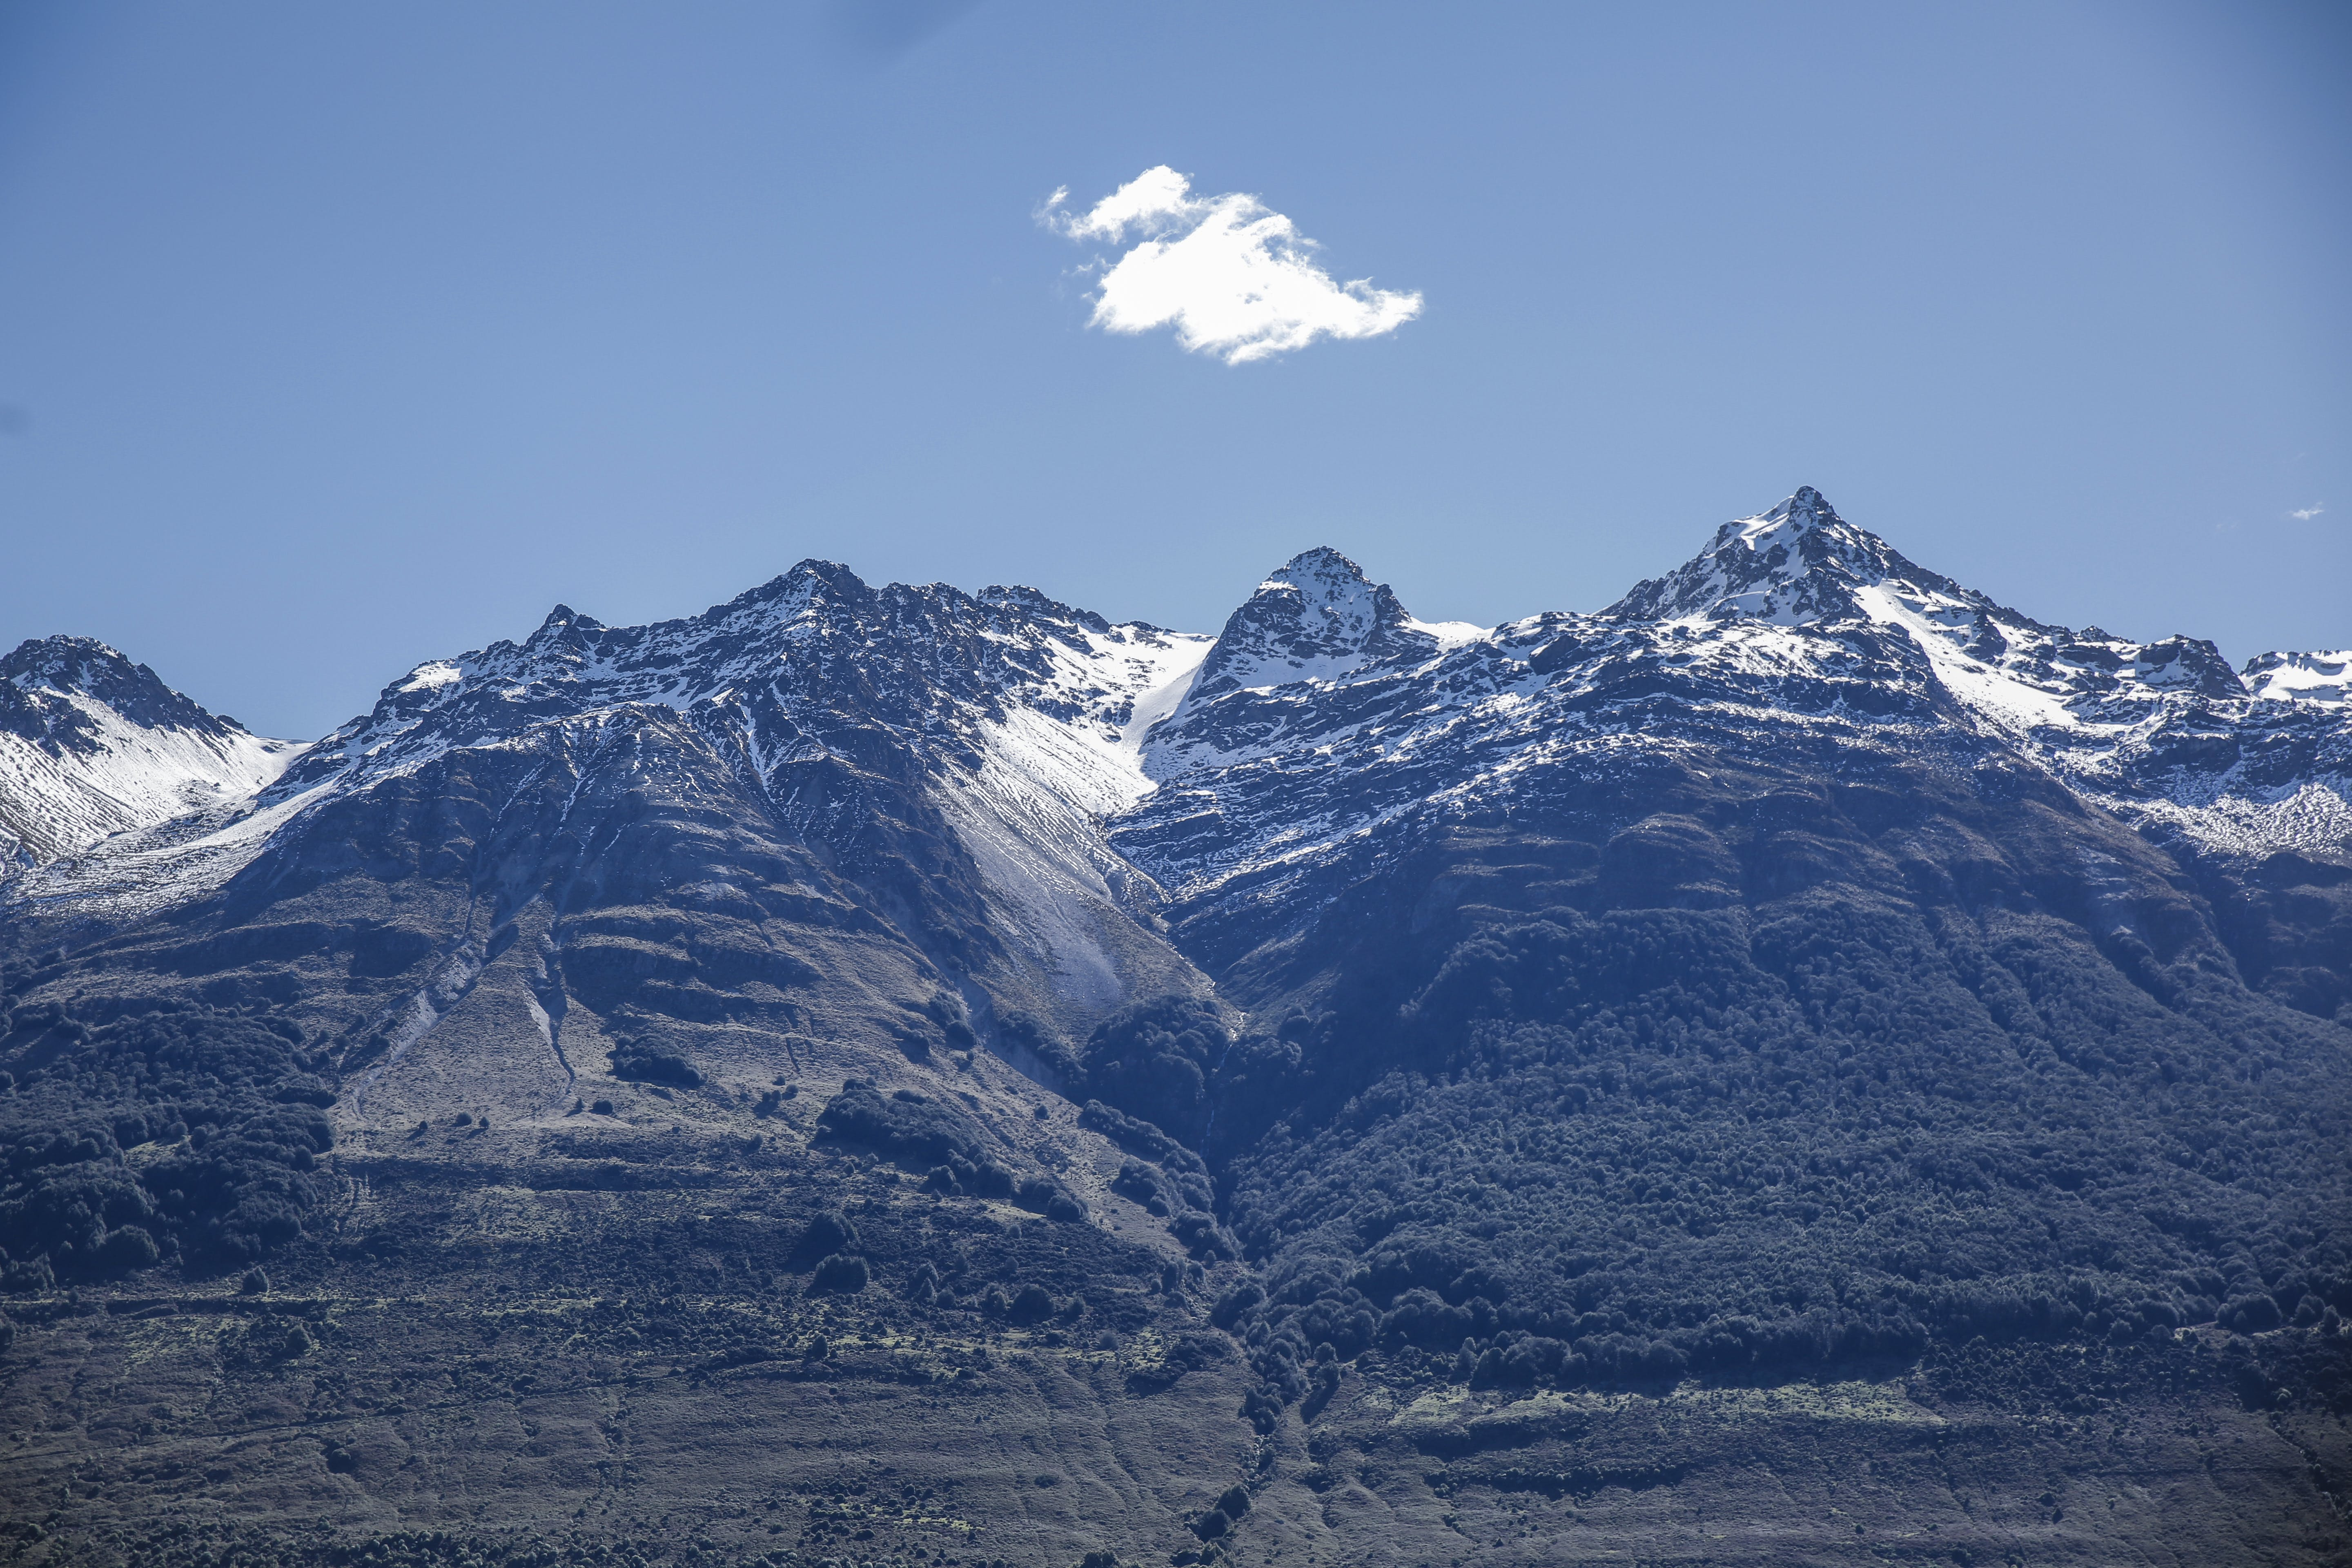 Free stock photo of snow, mountain, clear sky, queenstown